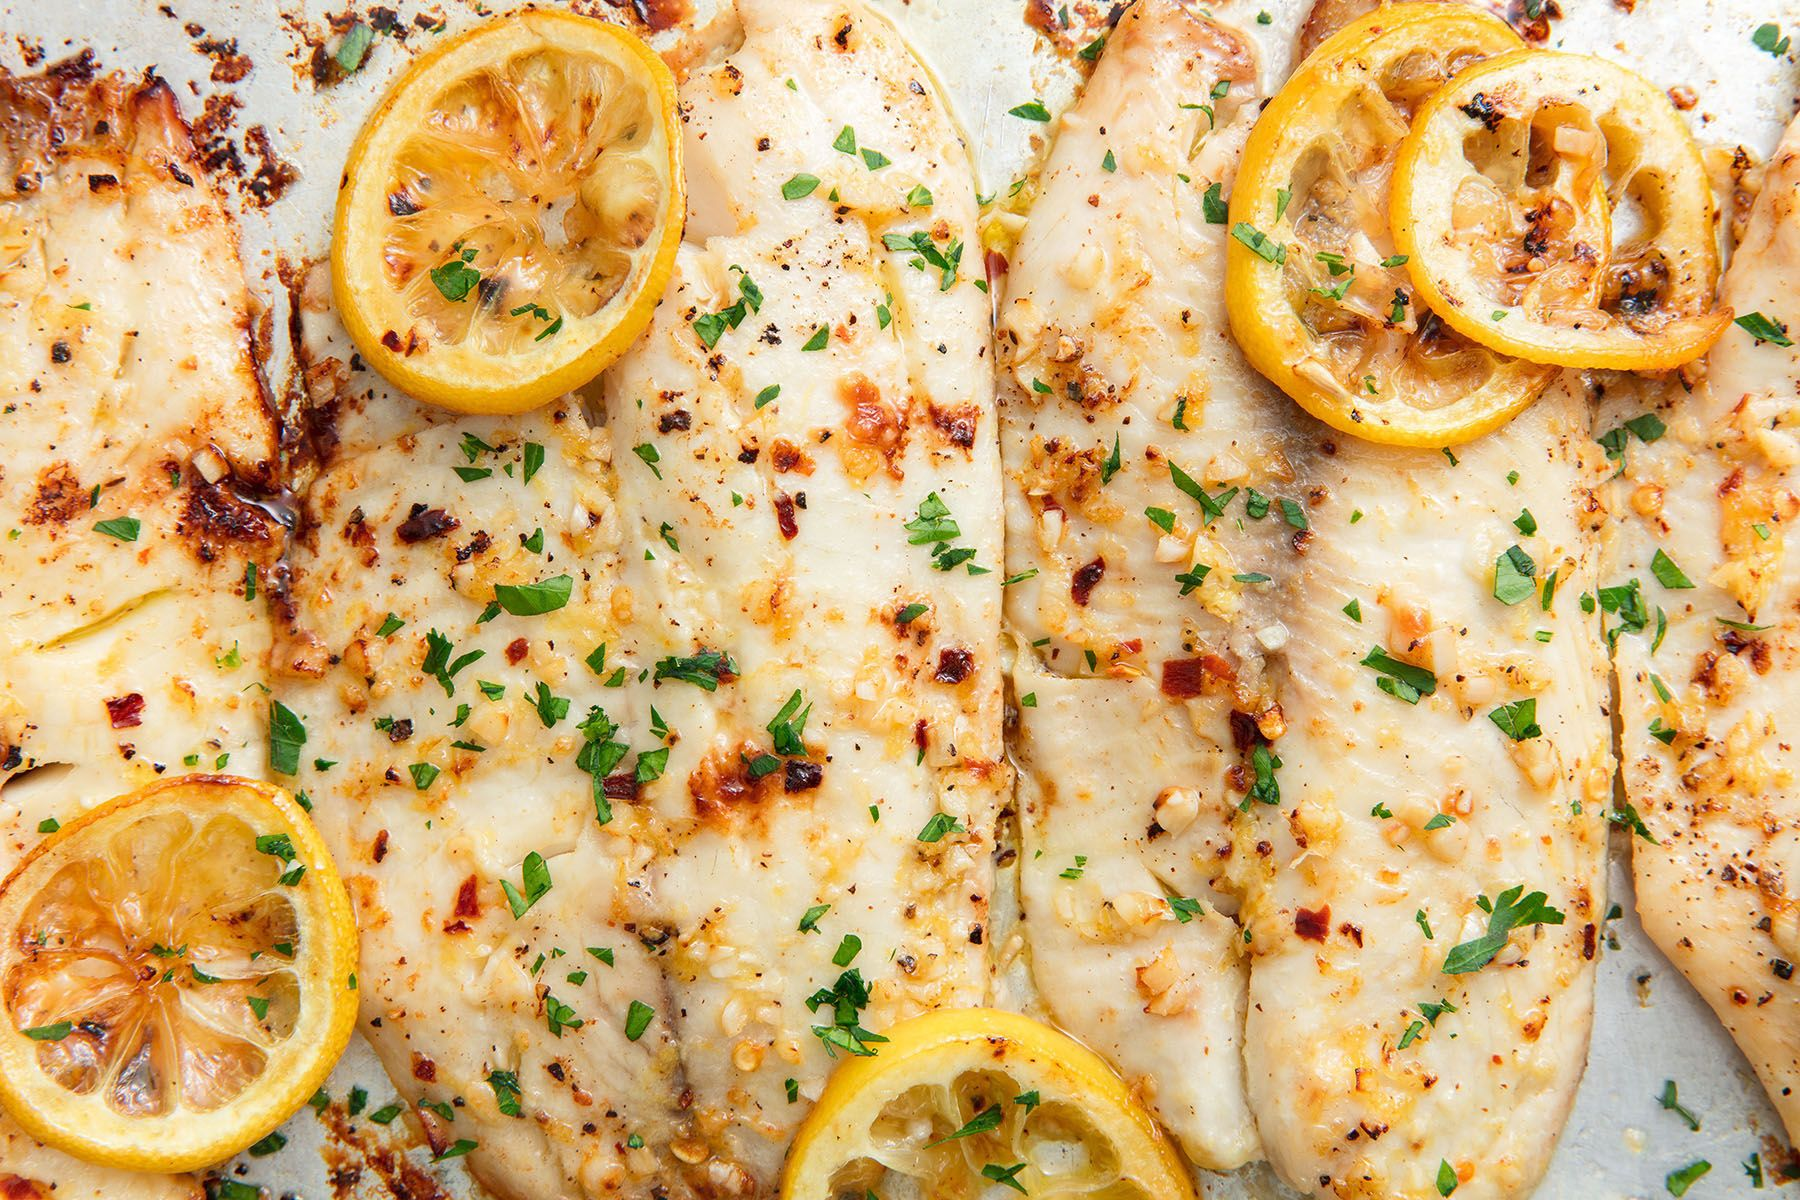 Best Oven Baked Tilapia Recipe How To Bake Lemon Garlic Tilapia